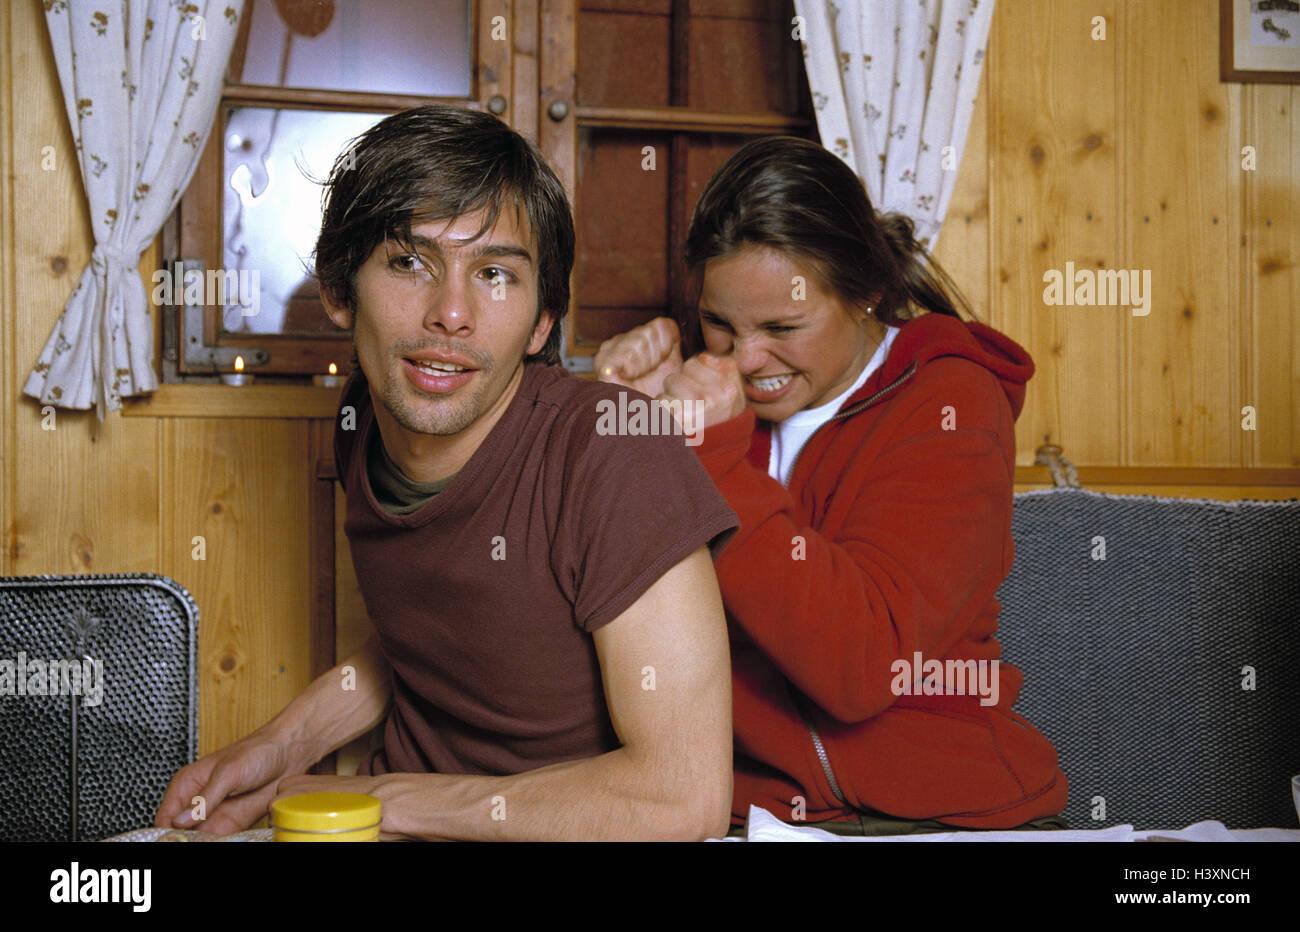 Steelworks evening, couple, young, fun, amusement, happy, hut, 'steelworks magic', friendship, 20-30 years, - Stock Image